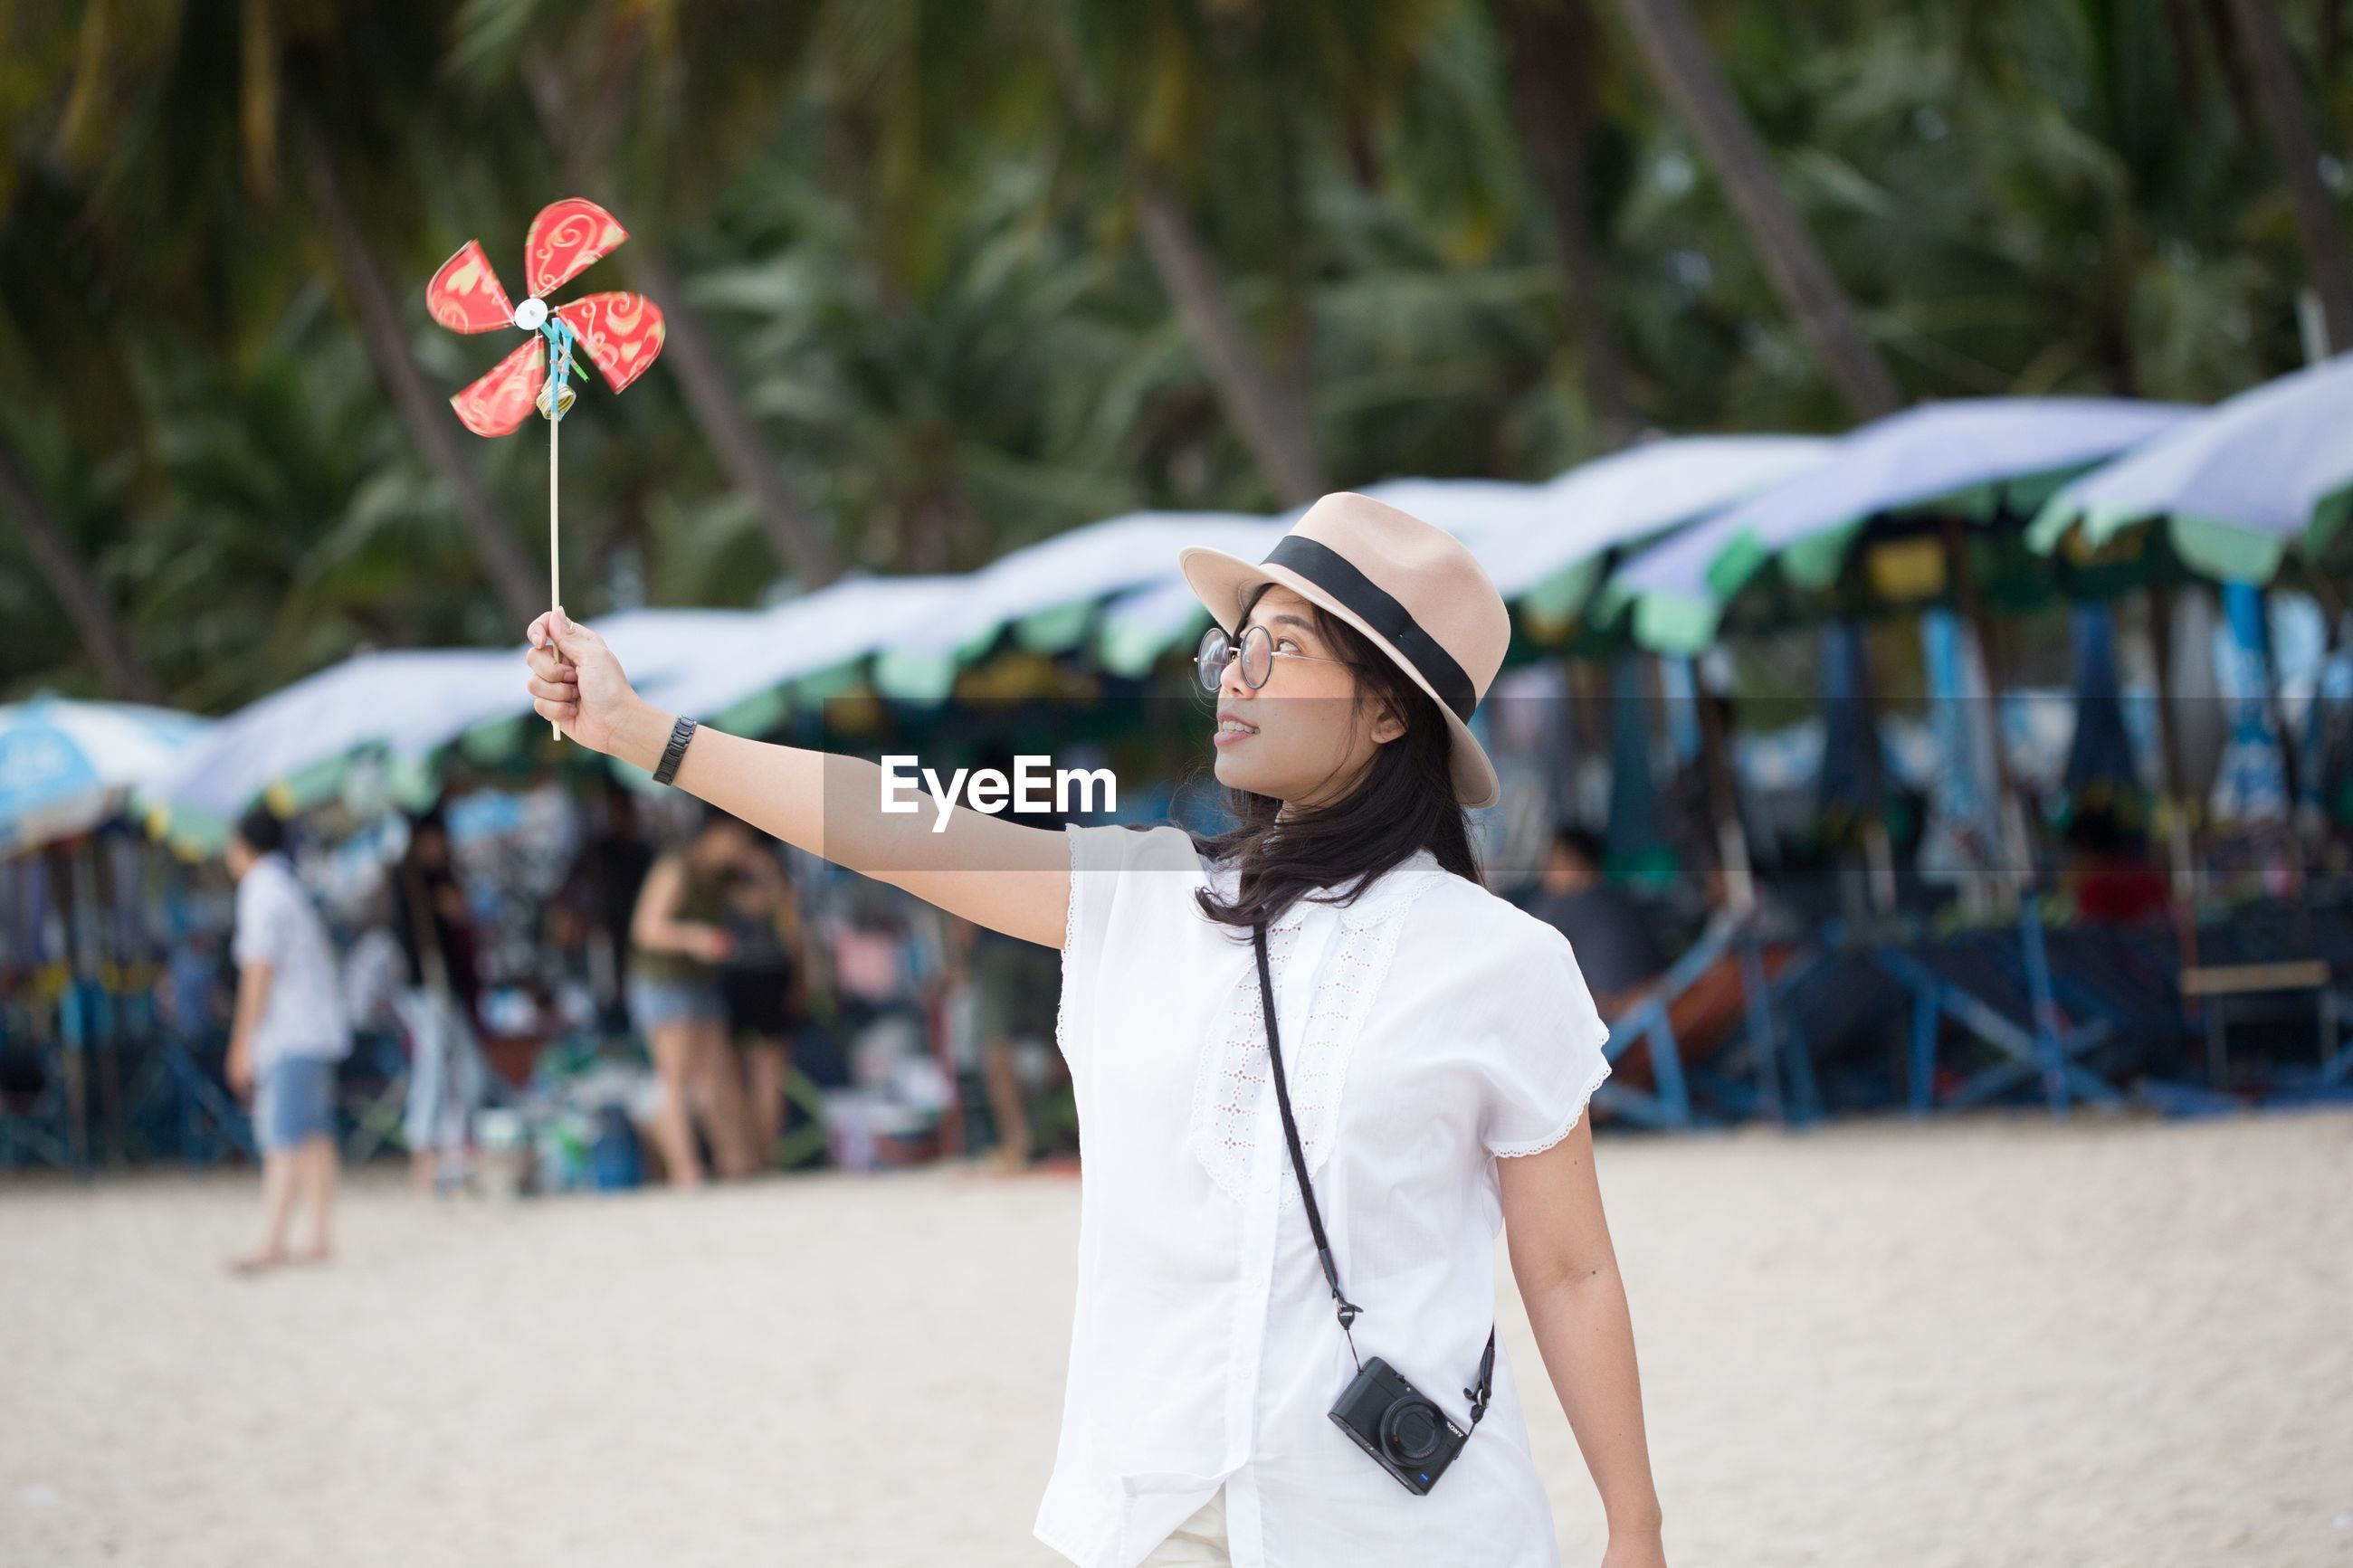 Woman holding pinwheel toy while standing on beach